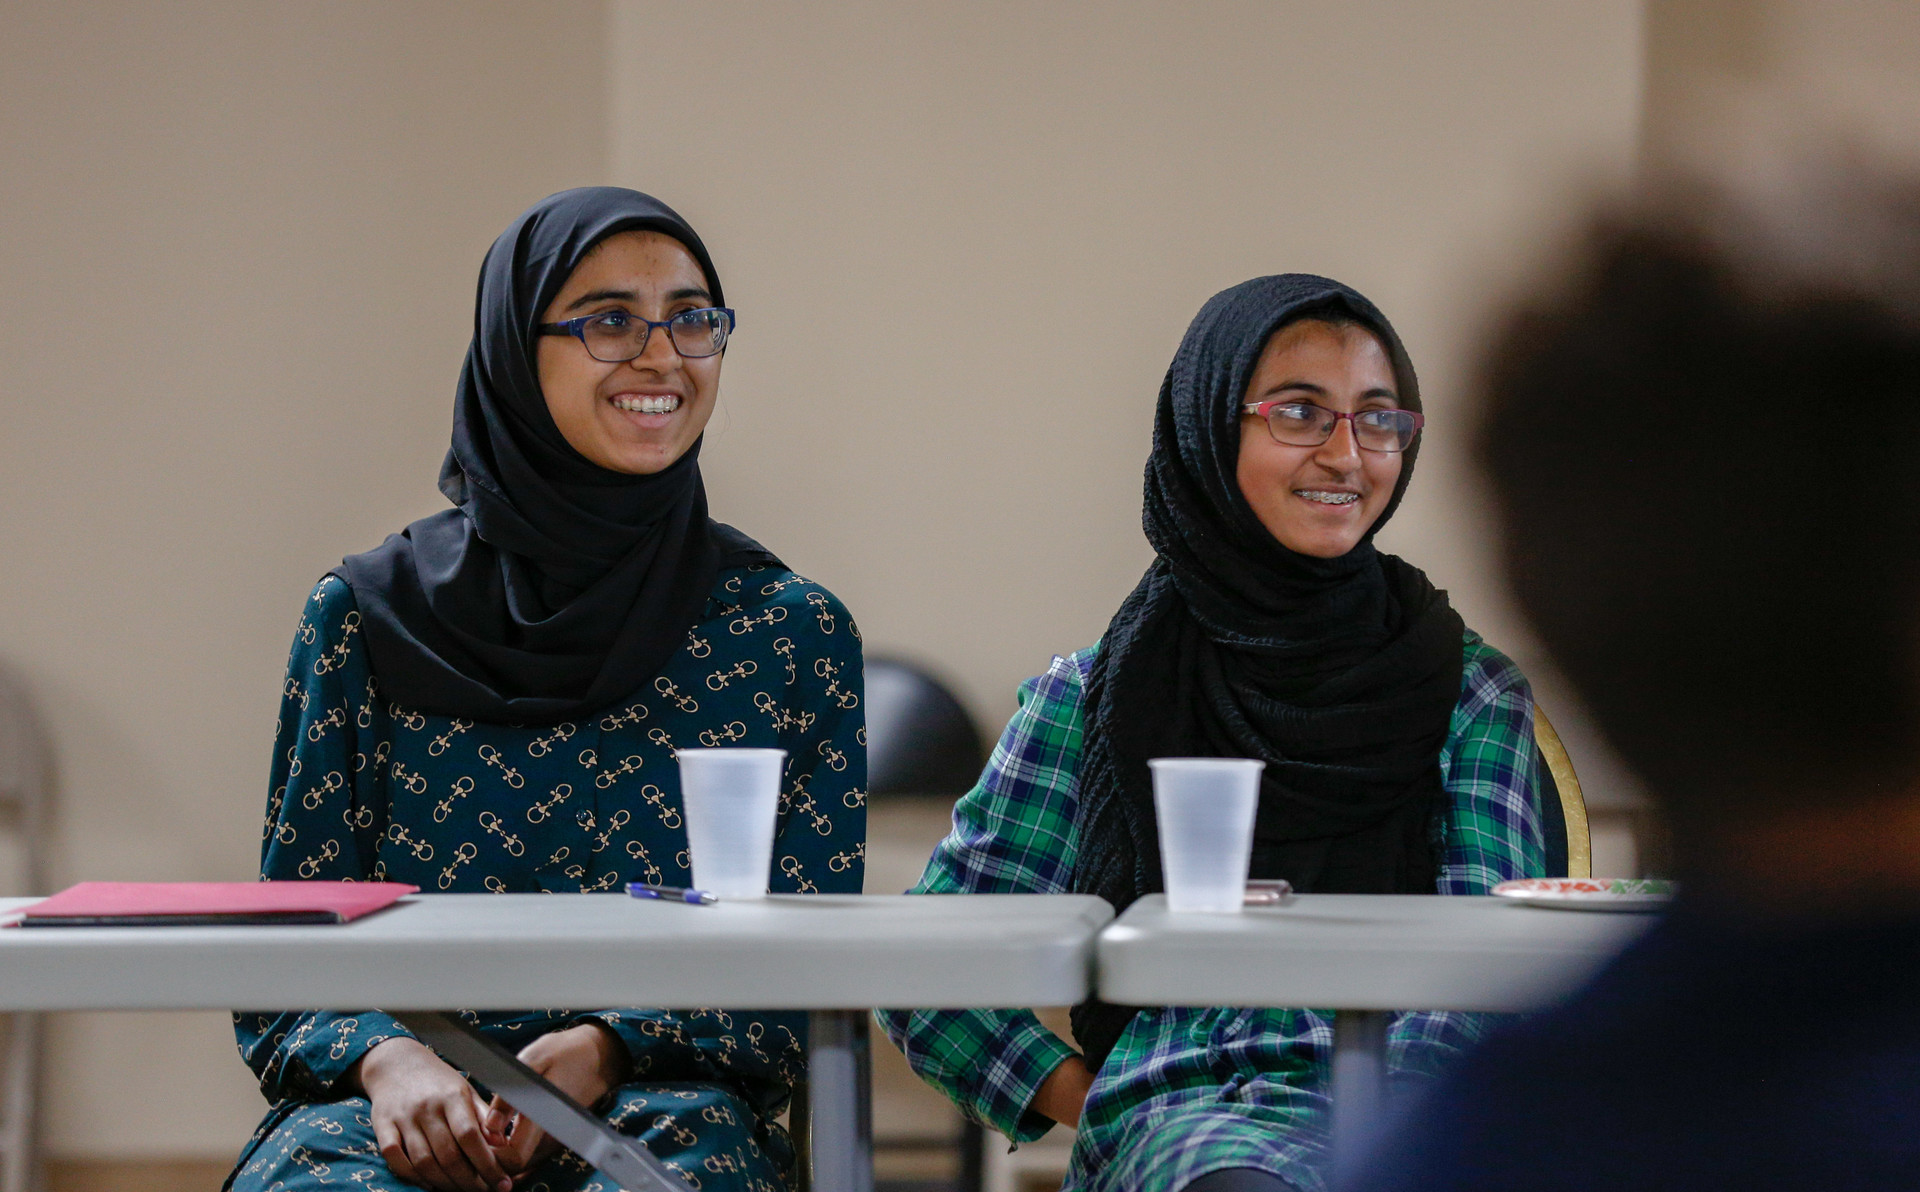 Muslim Teens Learn Tools to Fight Harassment